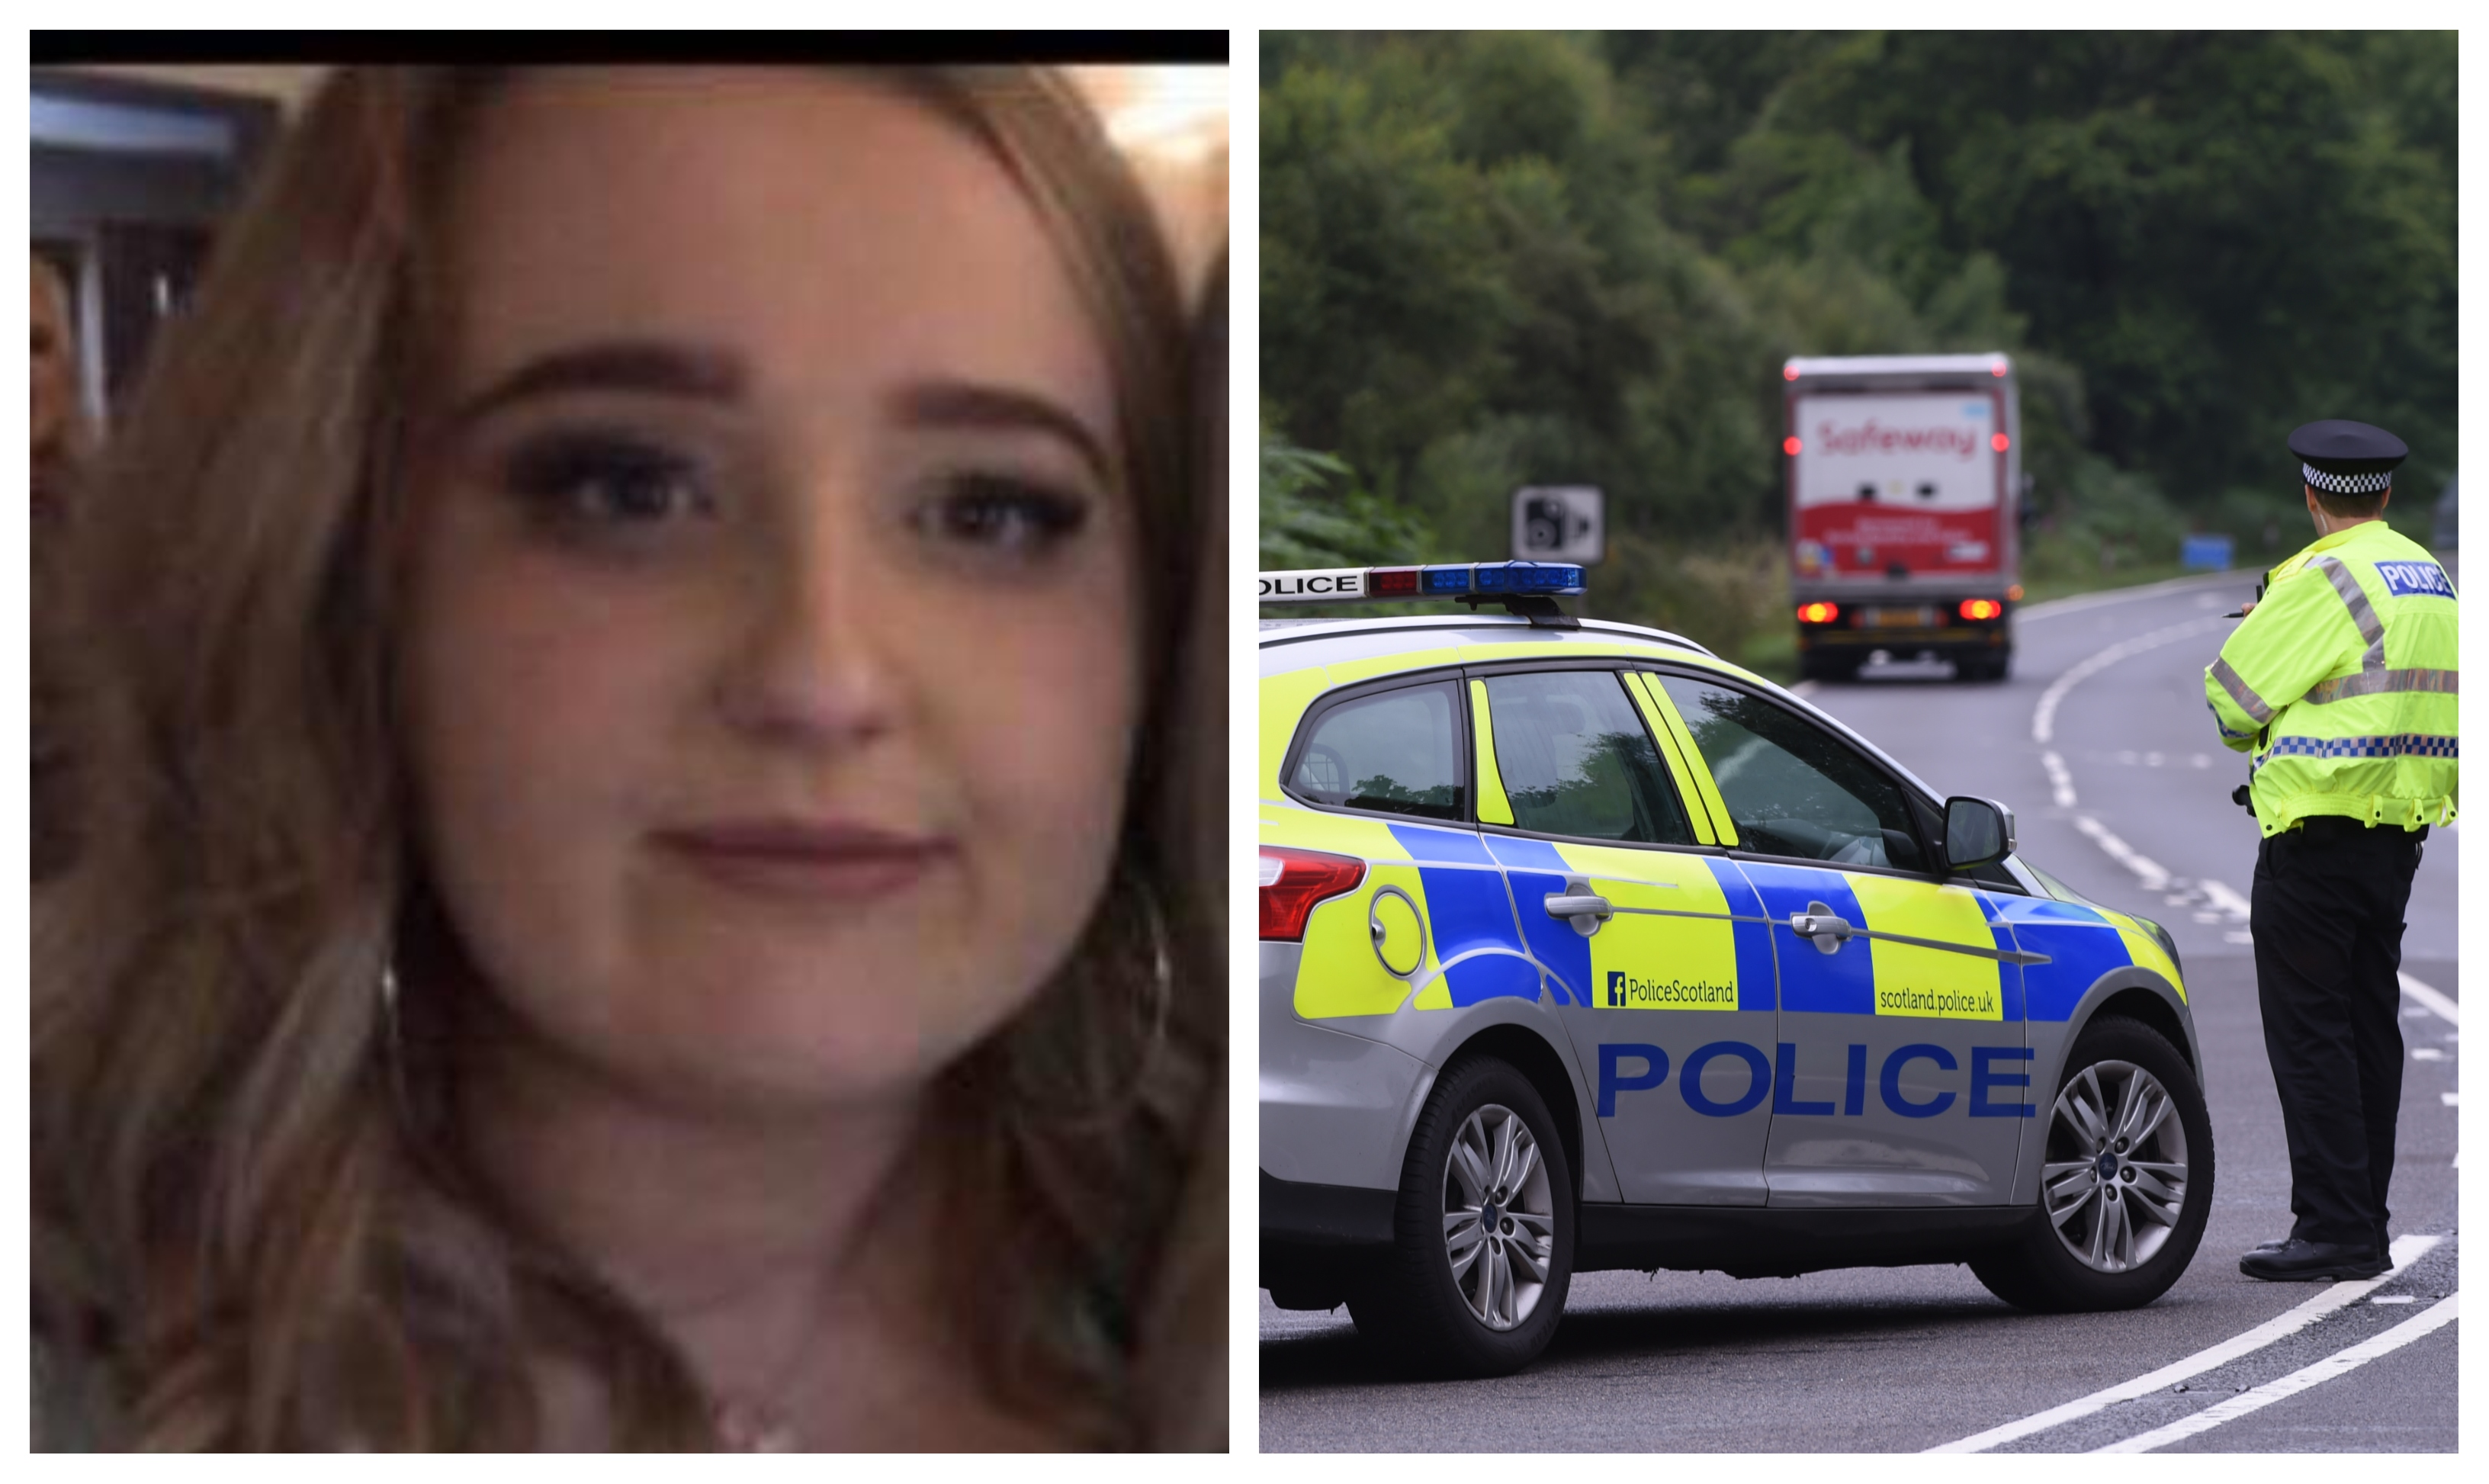 Megan Whitehead, 20, was from the Helmsdale area.